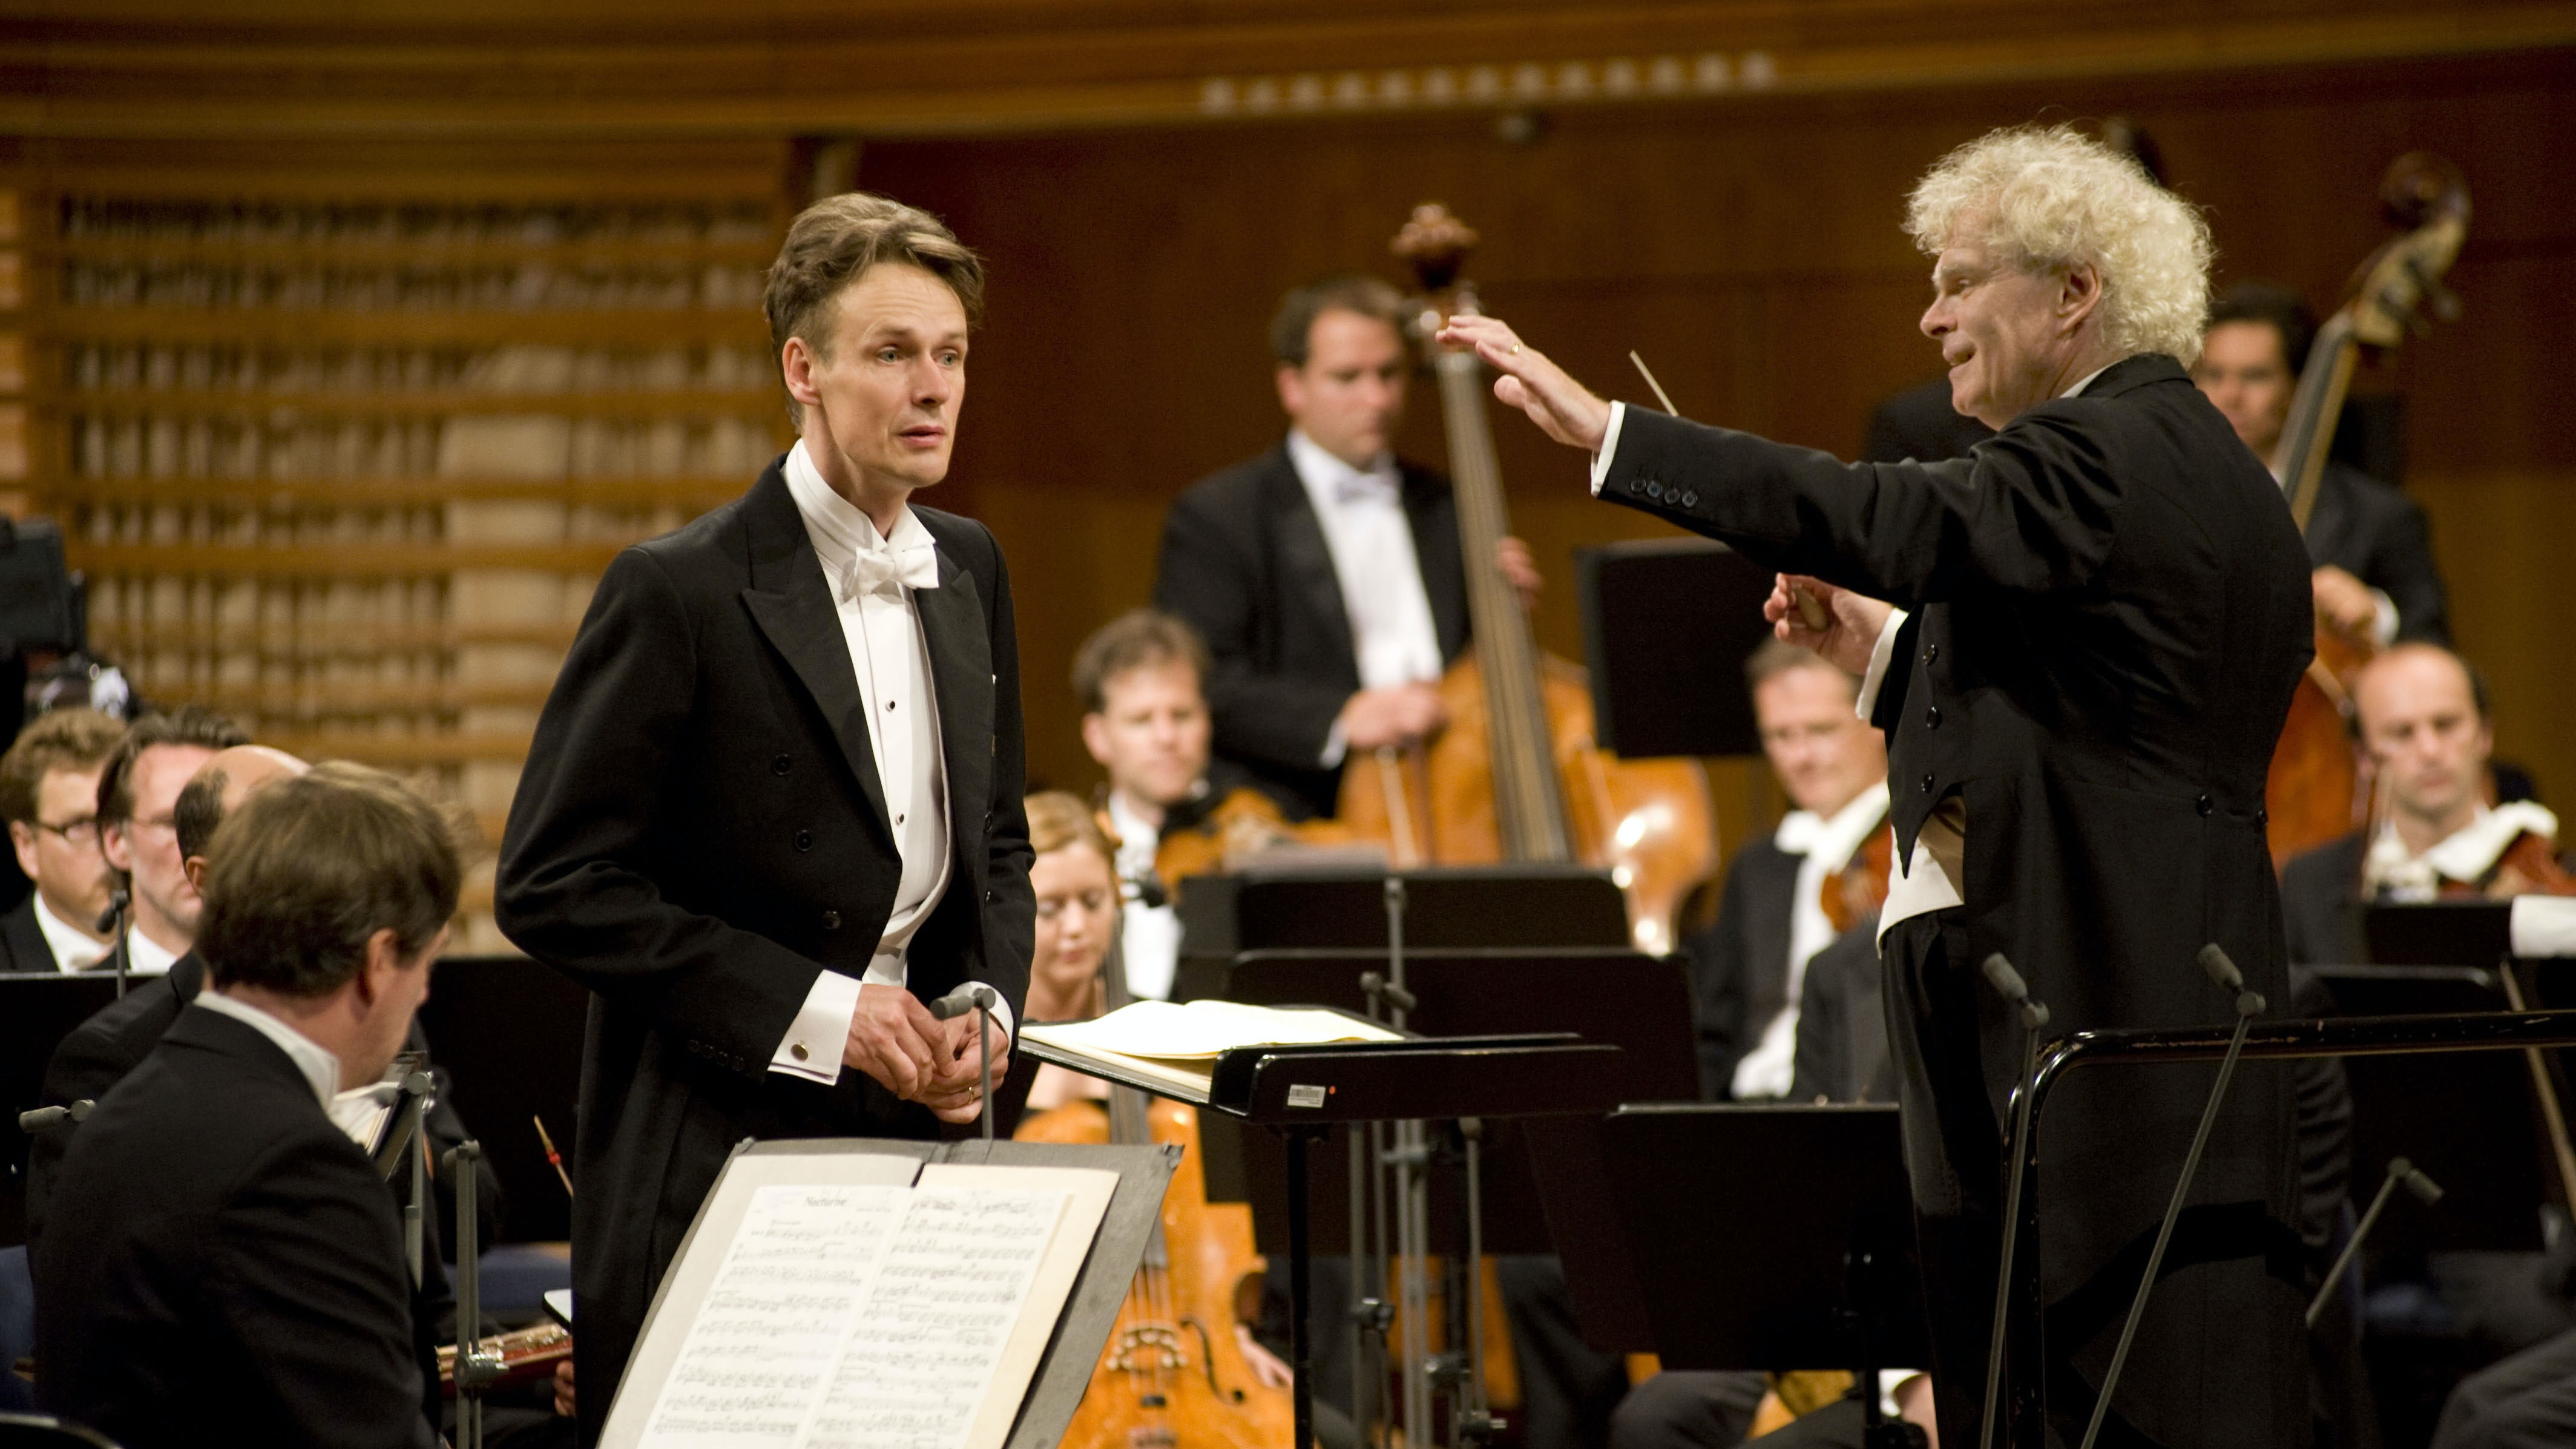 Sir Simon Rattle conducts Britten and Bruckner – With Ian Bostridge